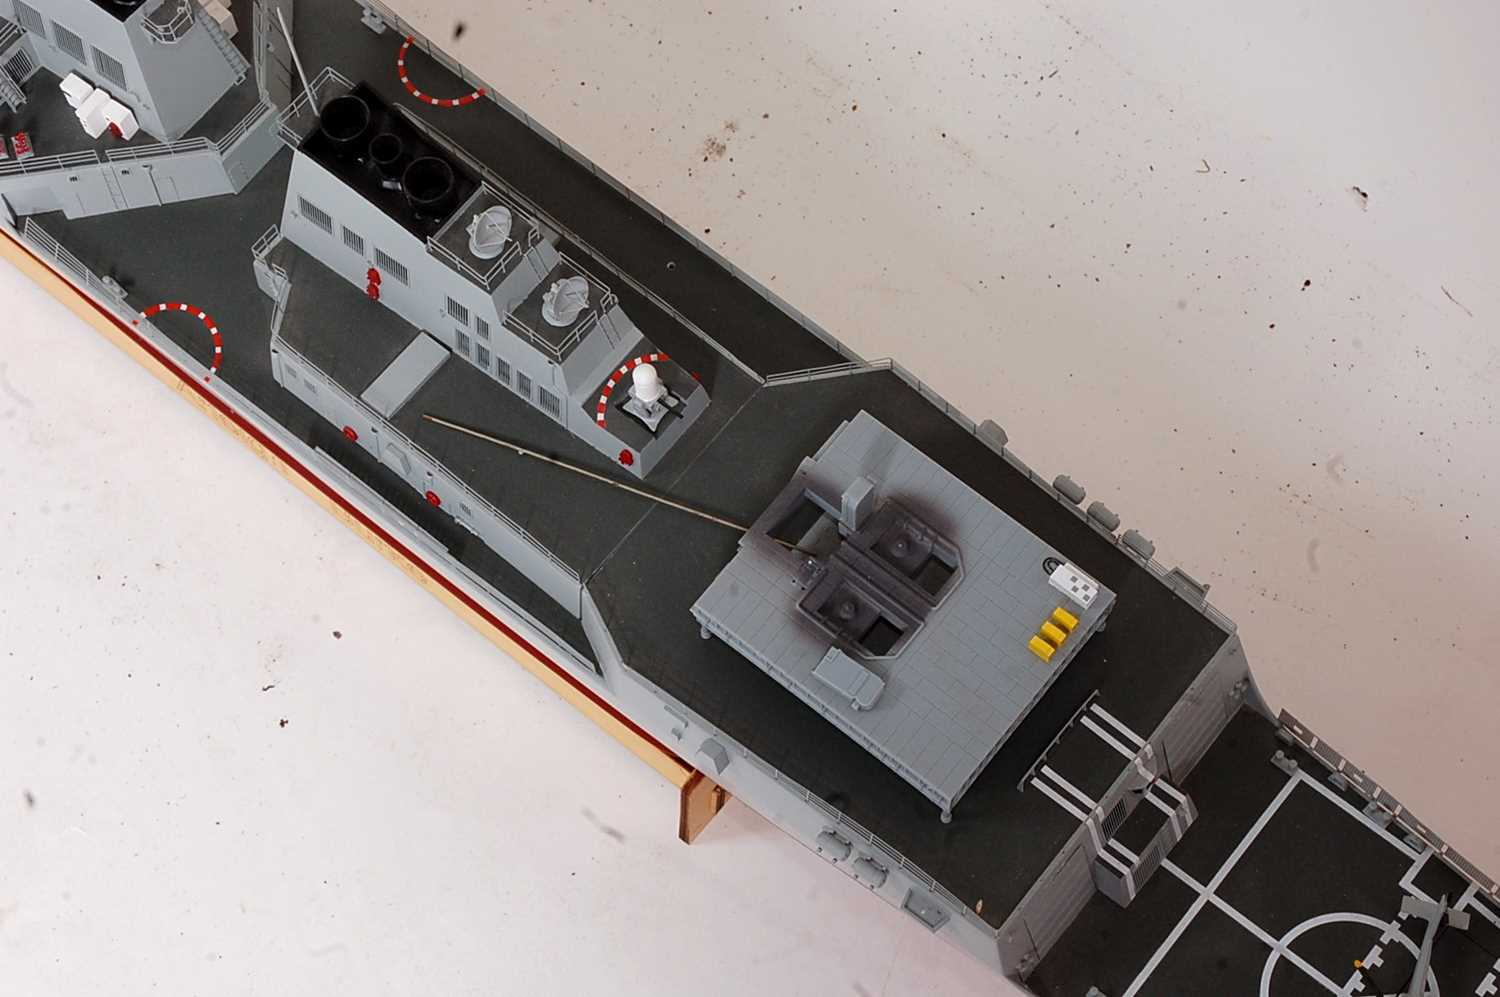 A kit built model of an Arleigh Burke No. 82 destroyer, finished in red, grey and black, with - Image 2 of 3